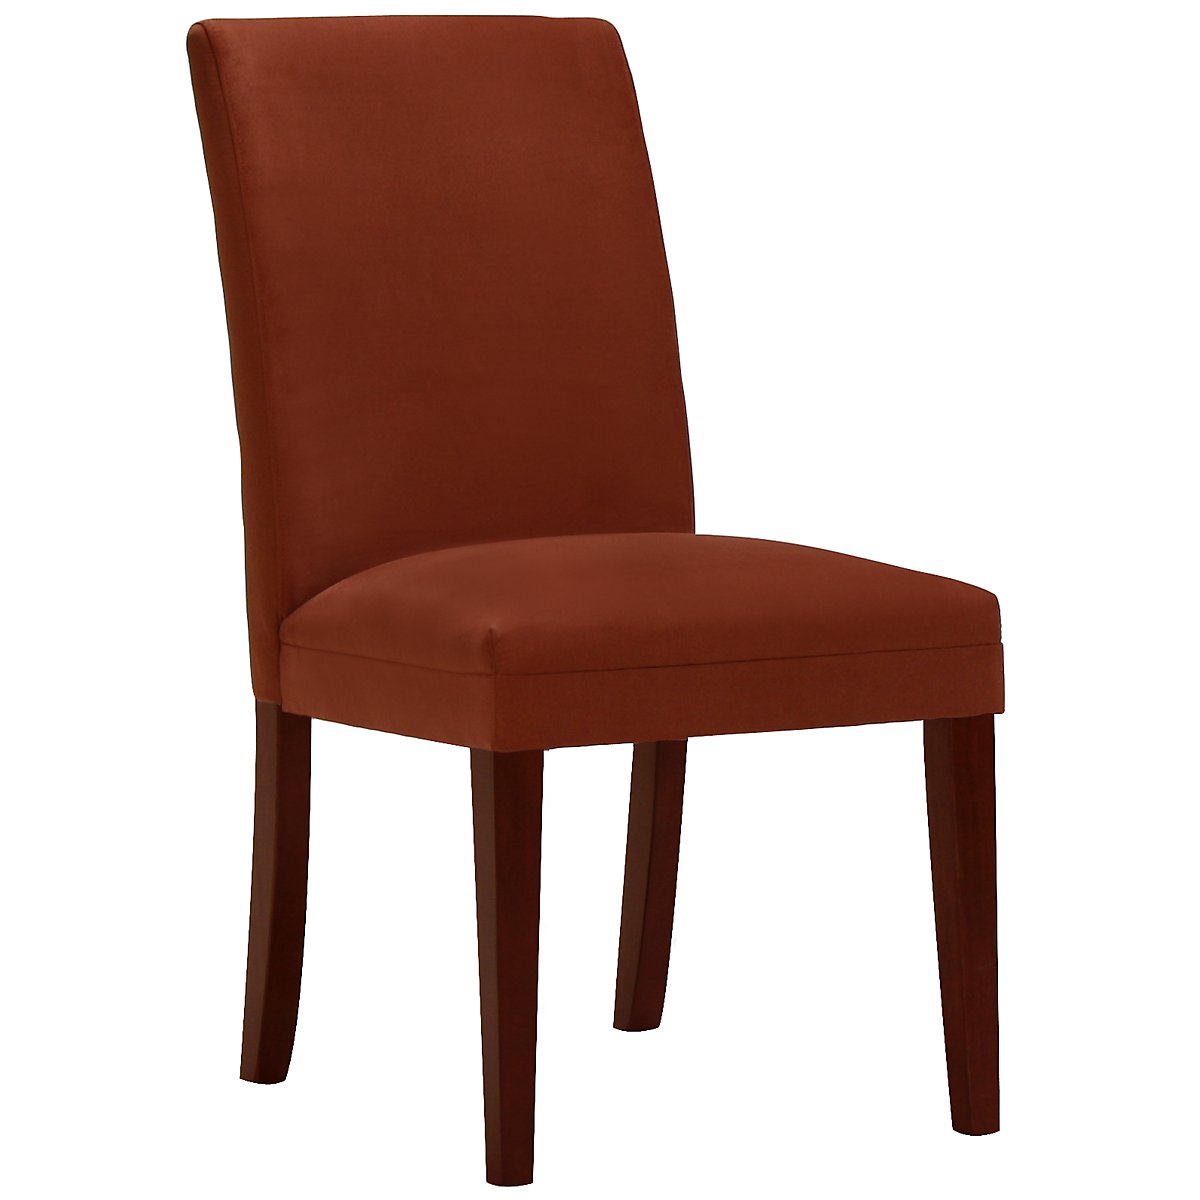 Park Rust Microfiber Upholstered Side Chair